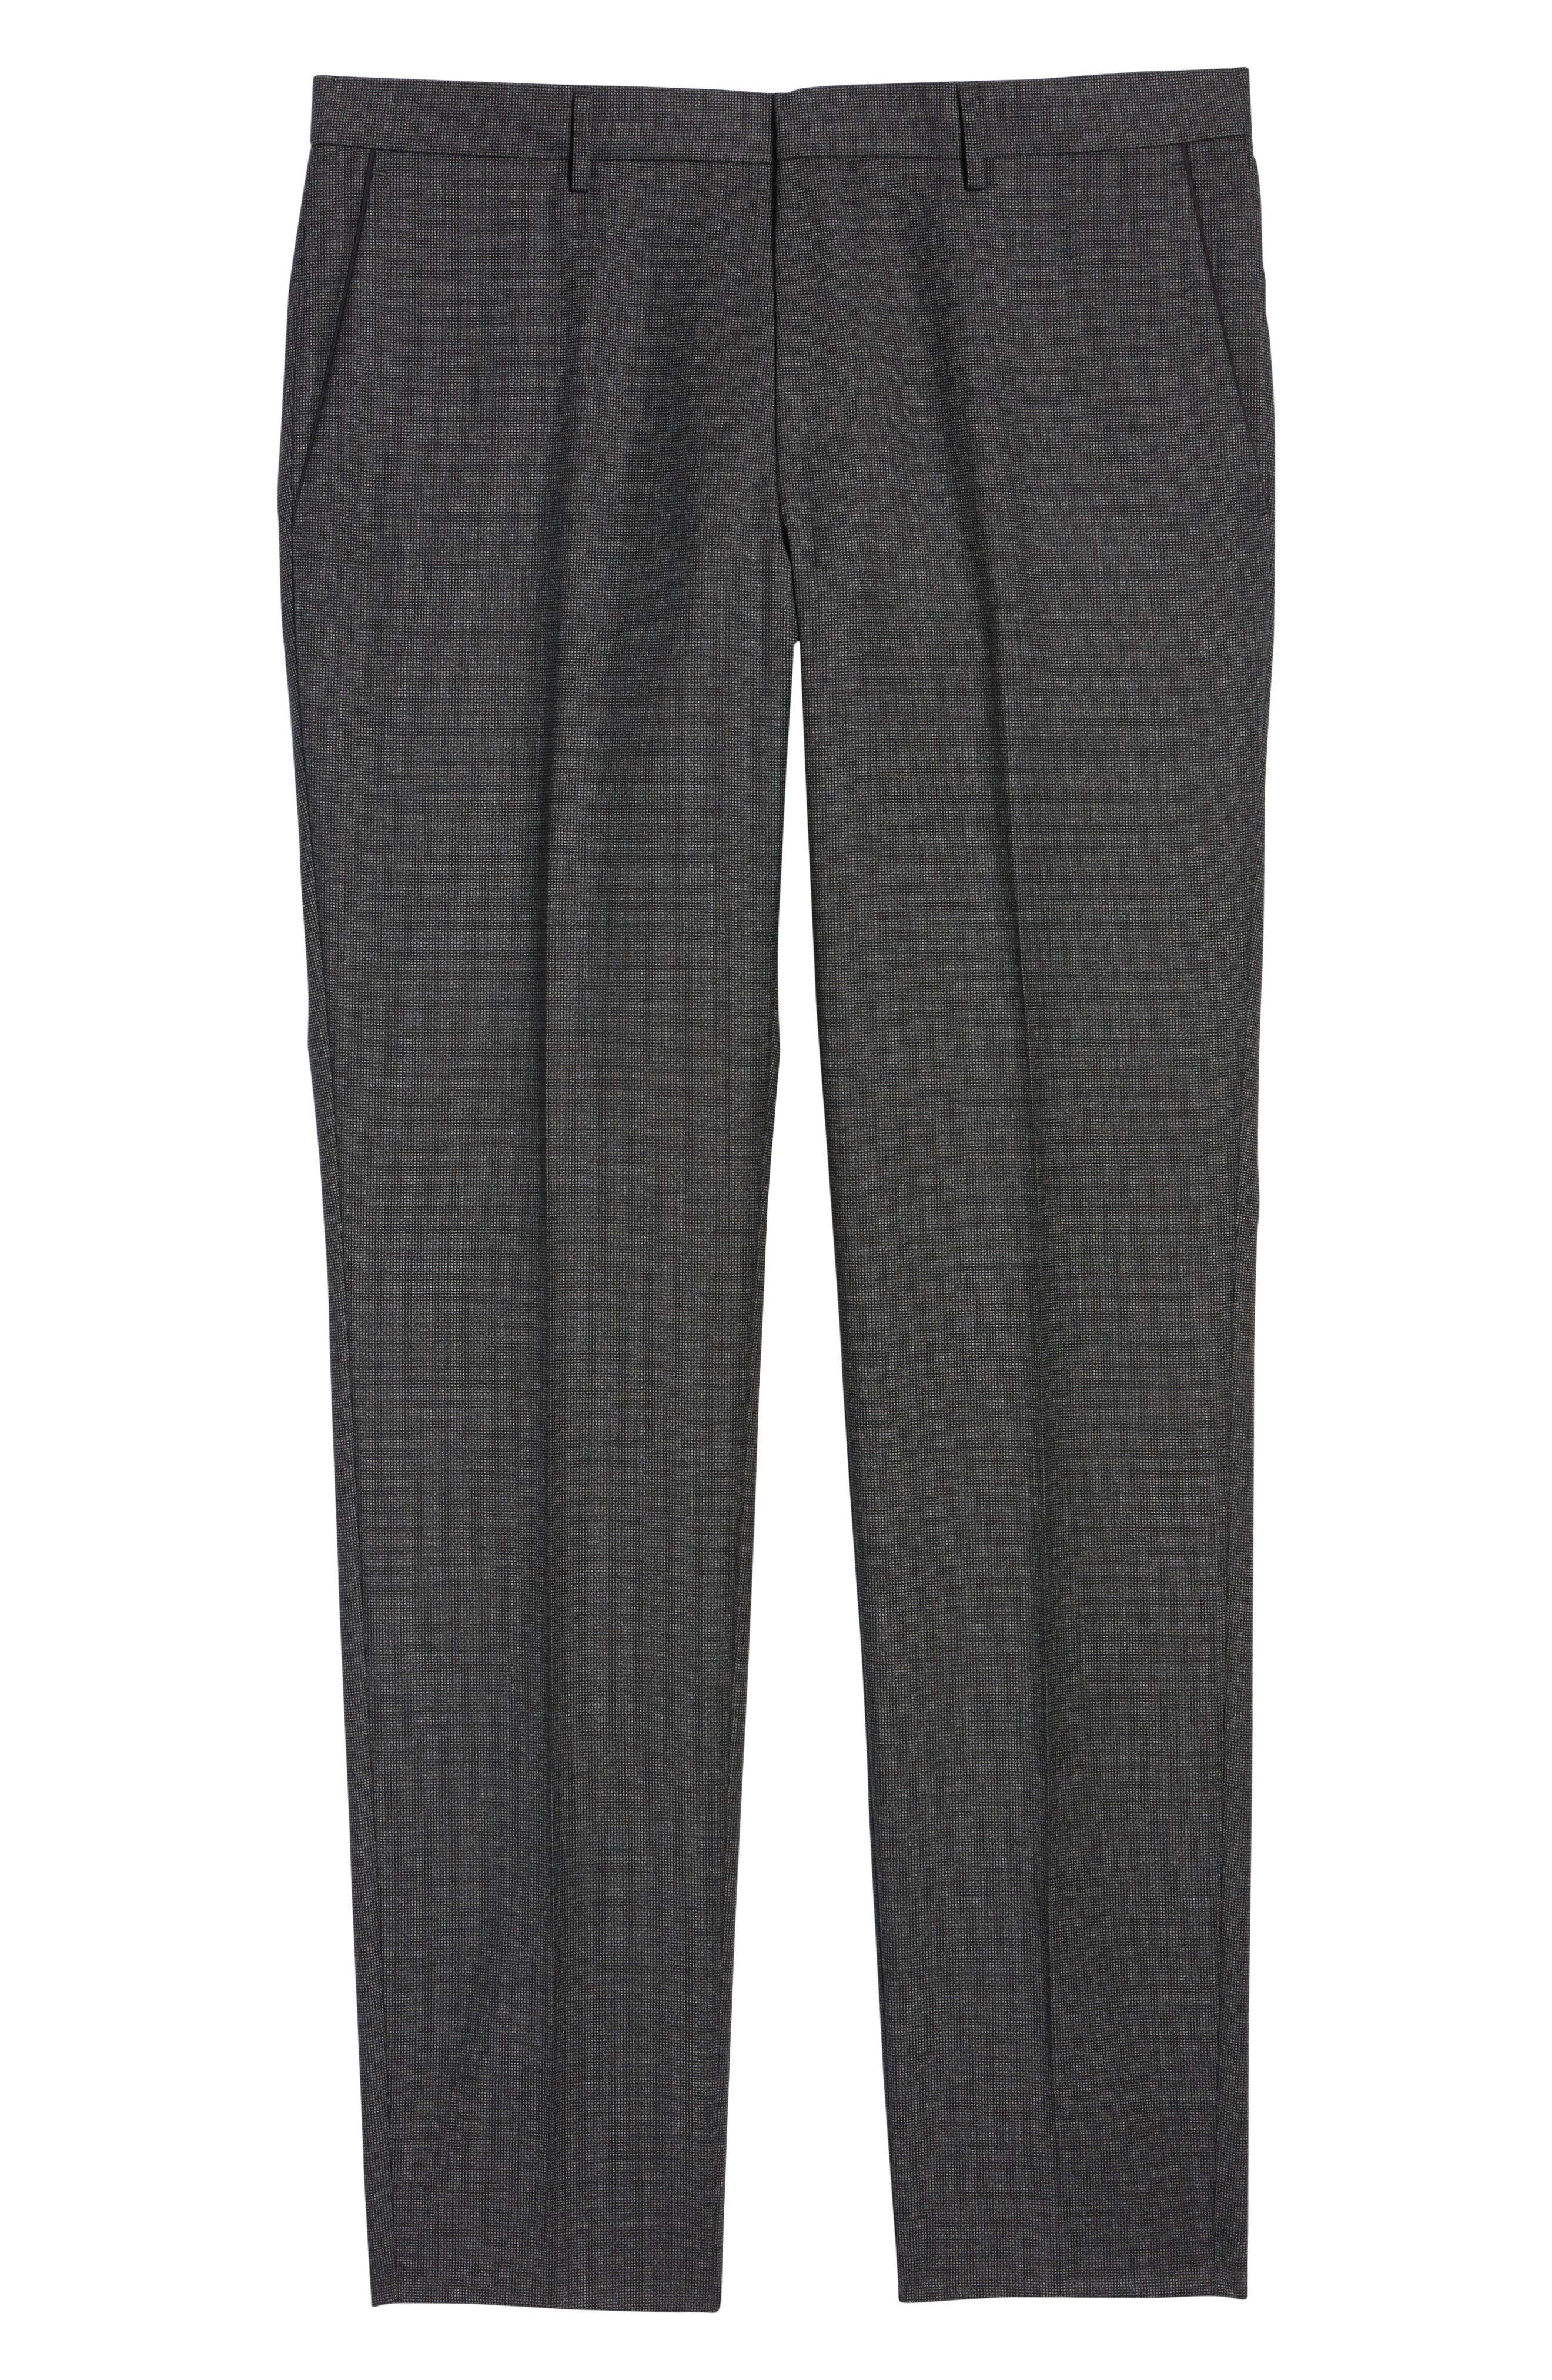 Giro Flat Front Solid Wool Trousers,                             Alternate thumbnail 6, color,                             OPEN GREEN